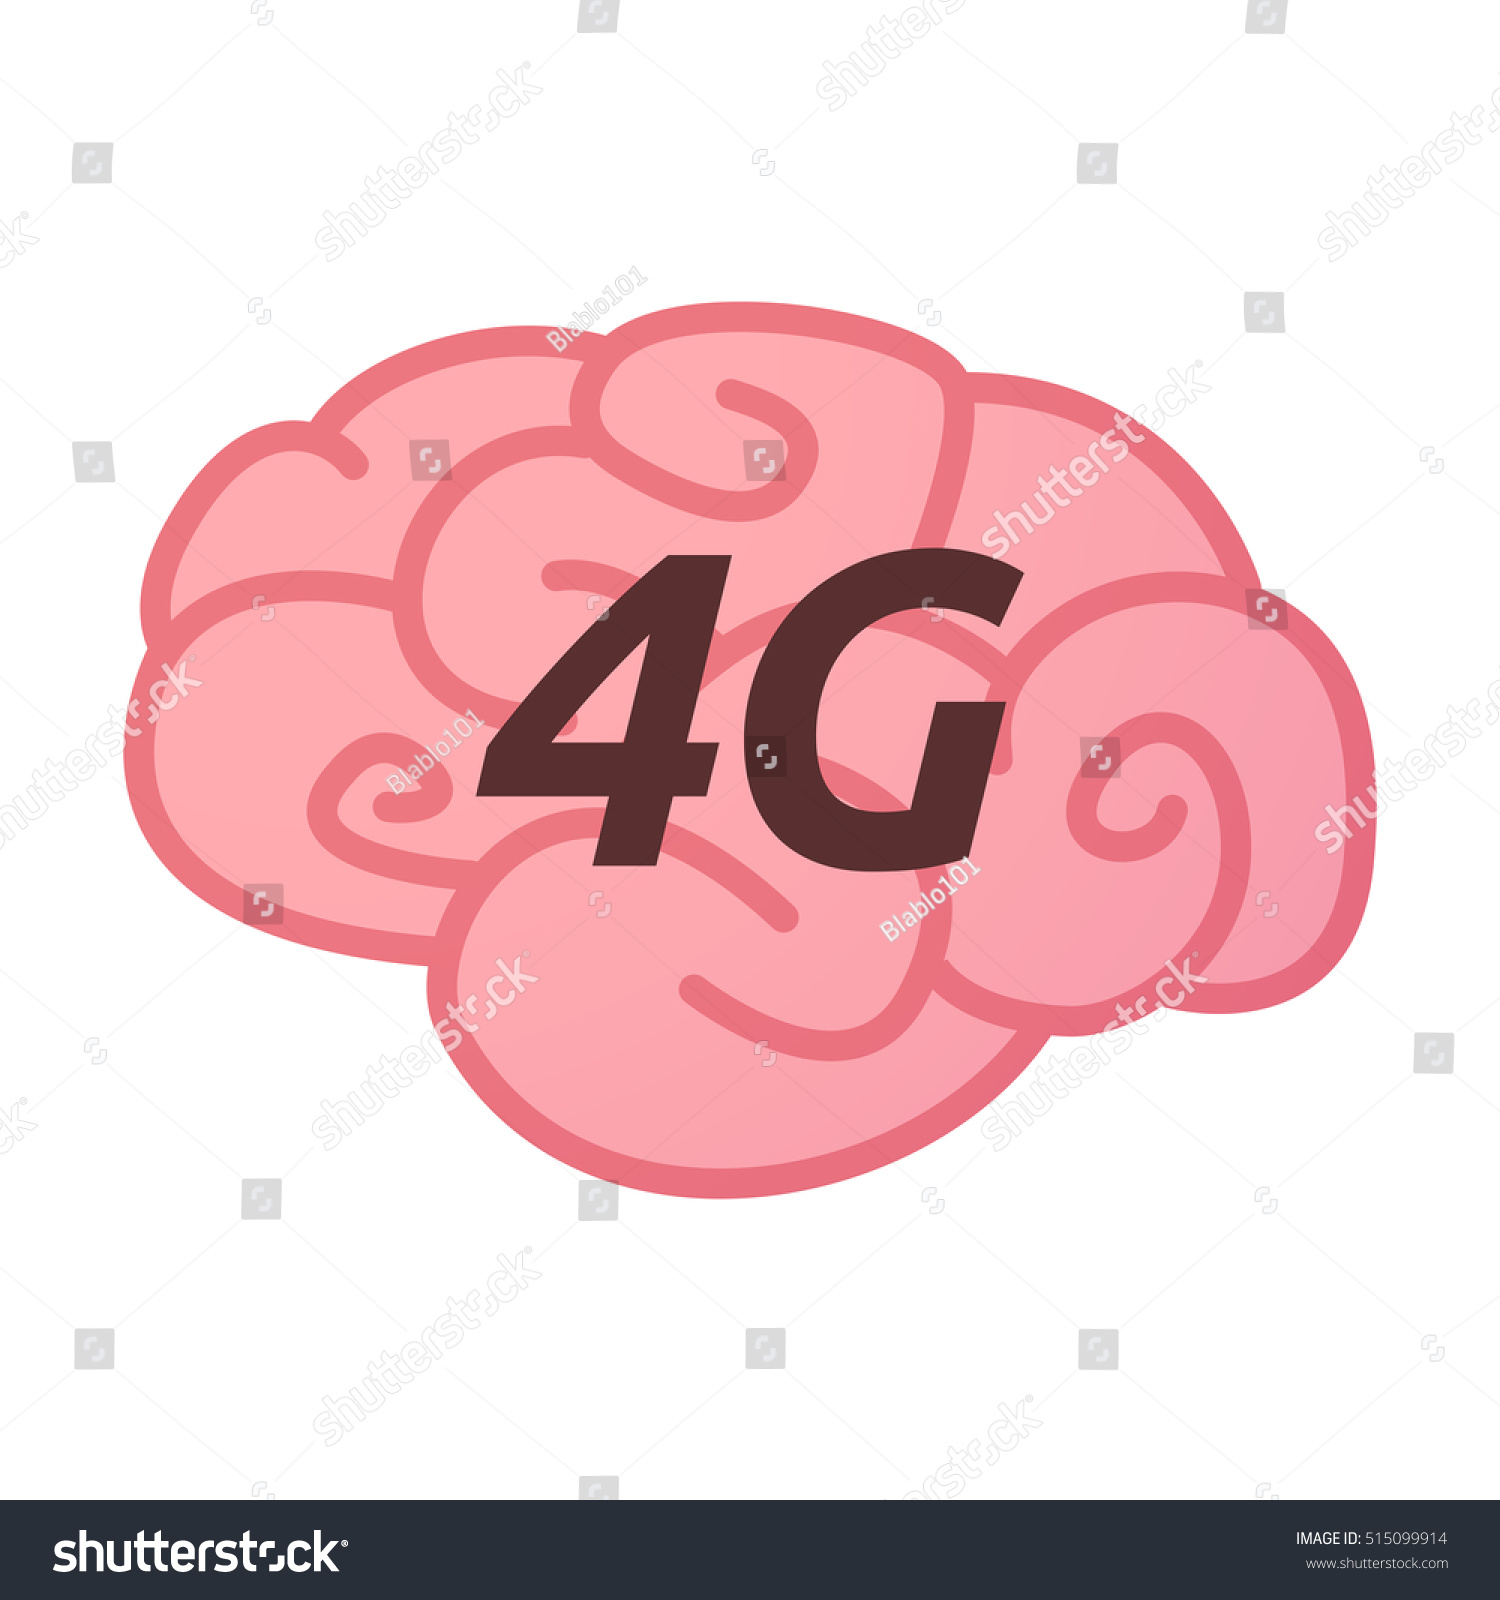 Illustration isolated brain icon text 4g stock vector 515099914 illustration of an isolated brain icon with the text 4g biocorpaavc Images